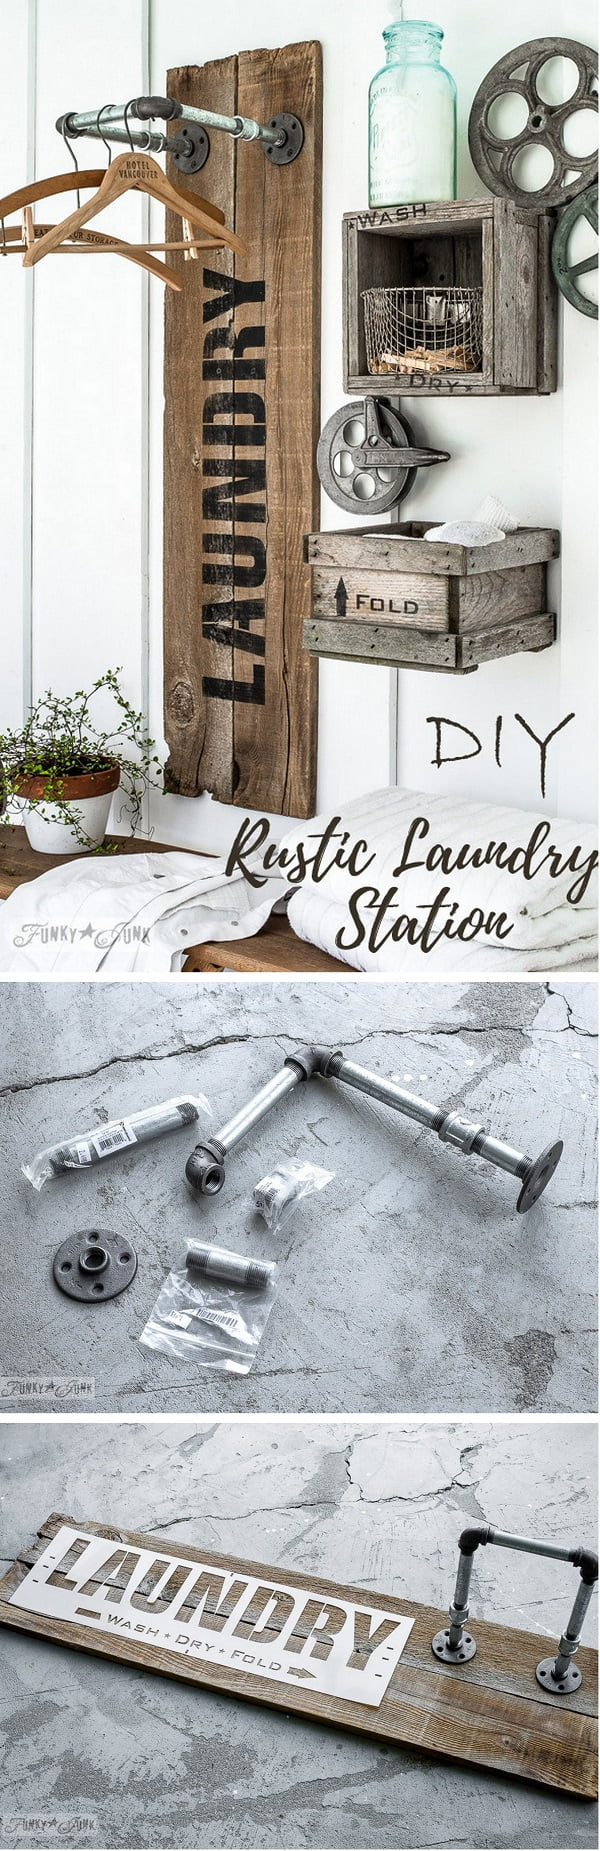 Check out this easy idea on how to make a #DIY #rustic laundry station on a #budget #homedecor #project